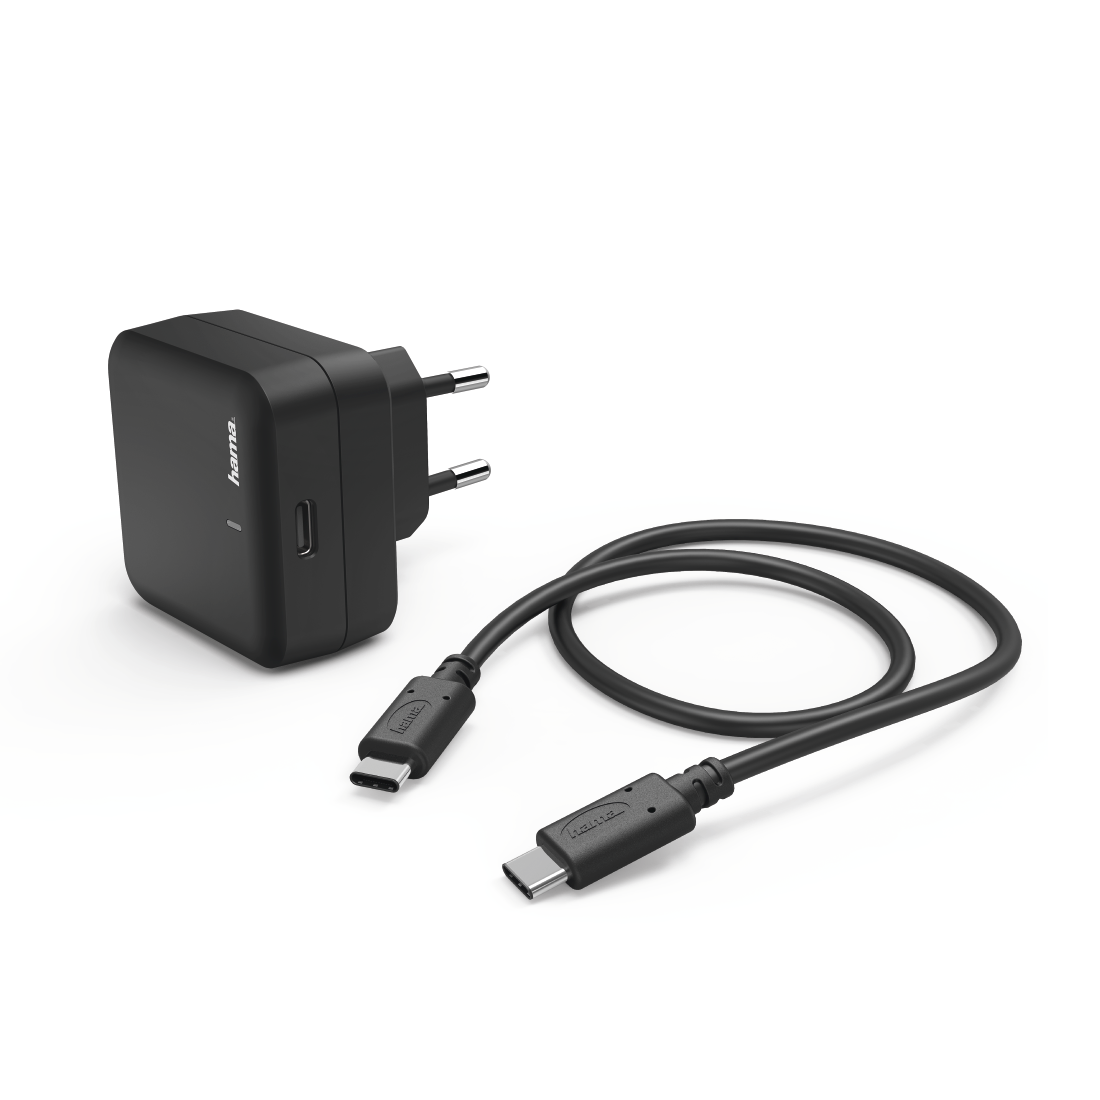 abx2 High-Res Image 2 - Hama, Kit charge secteur, port USB T.-C, Power Delivery (PD), 3A, noir